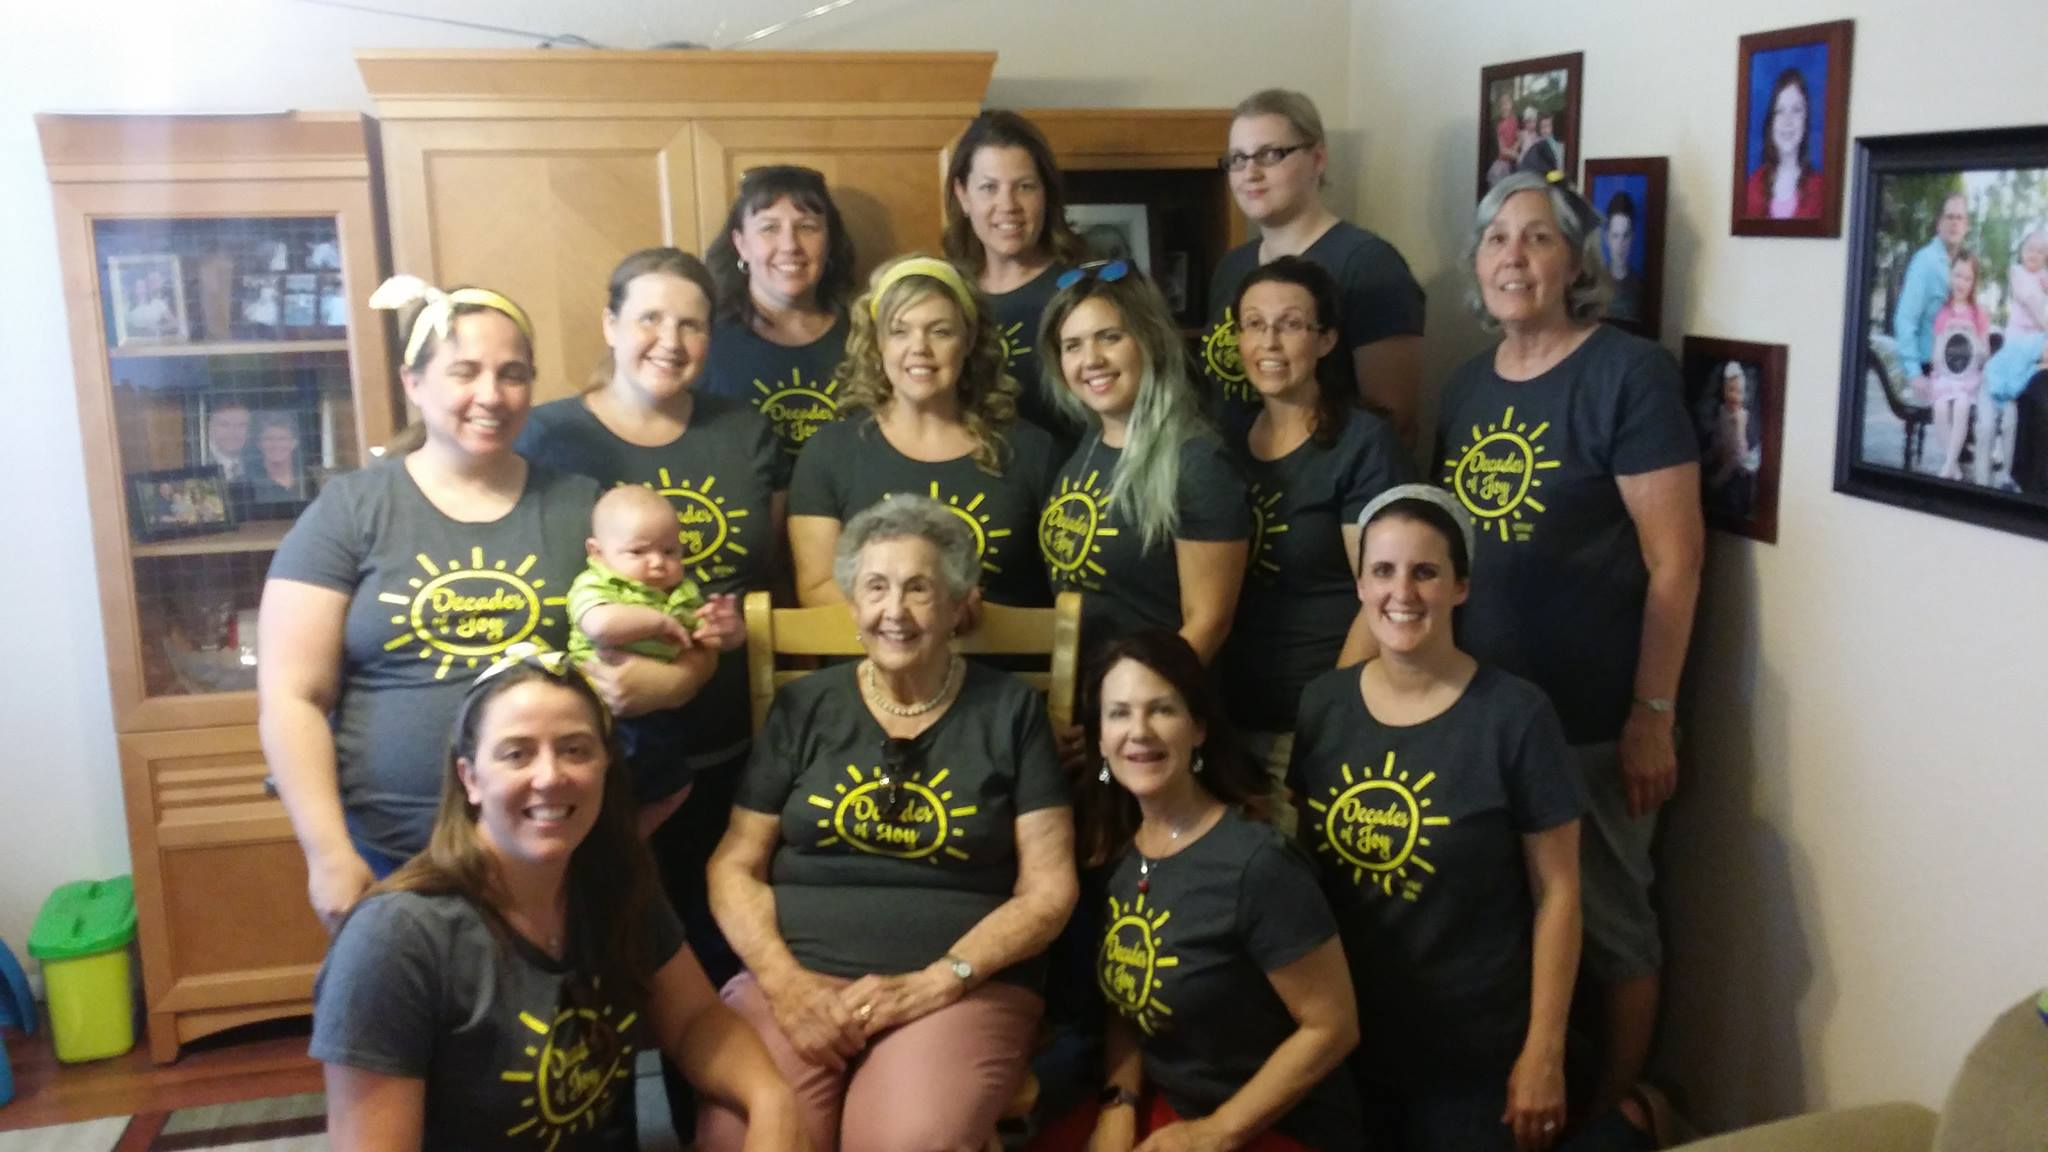 Custom T Shirts For 3 Generations Of Women Shirt Design Ideas